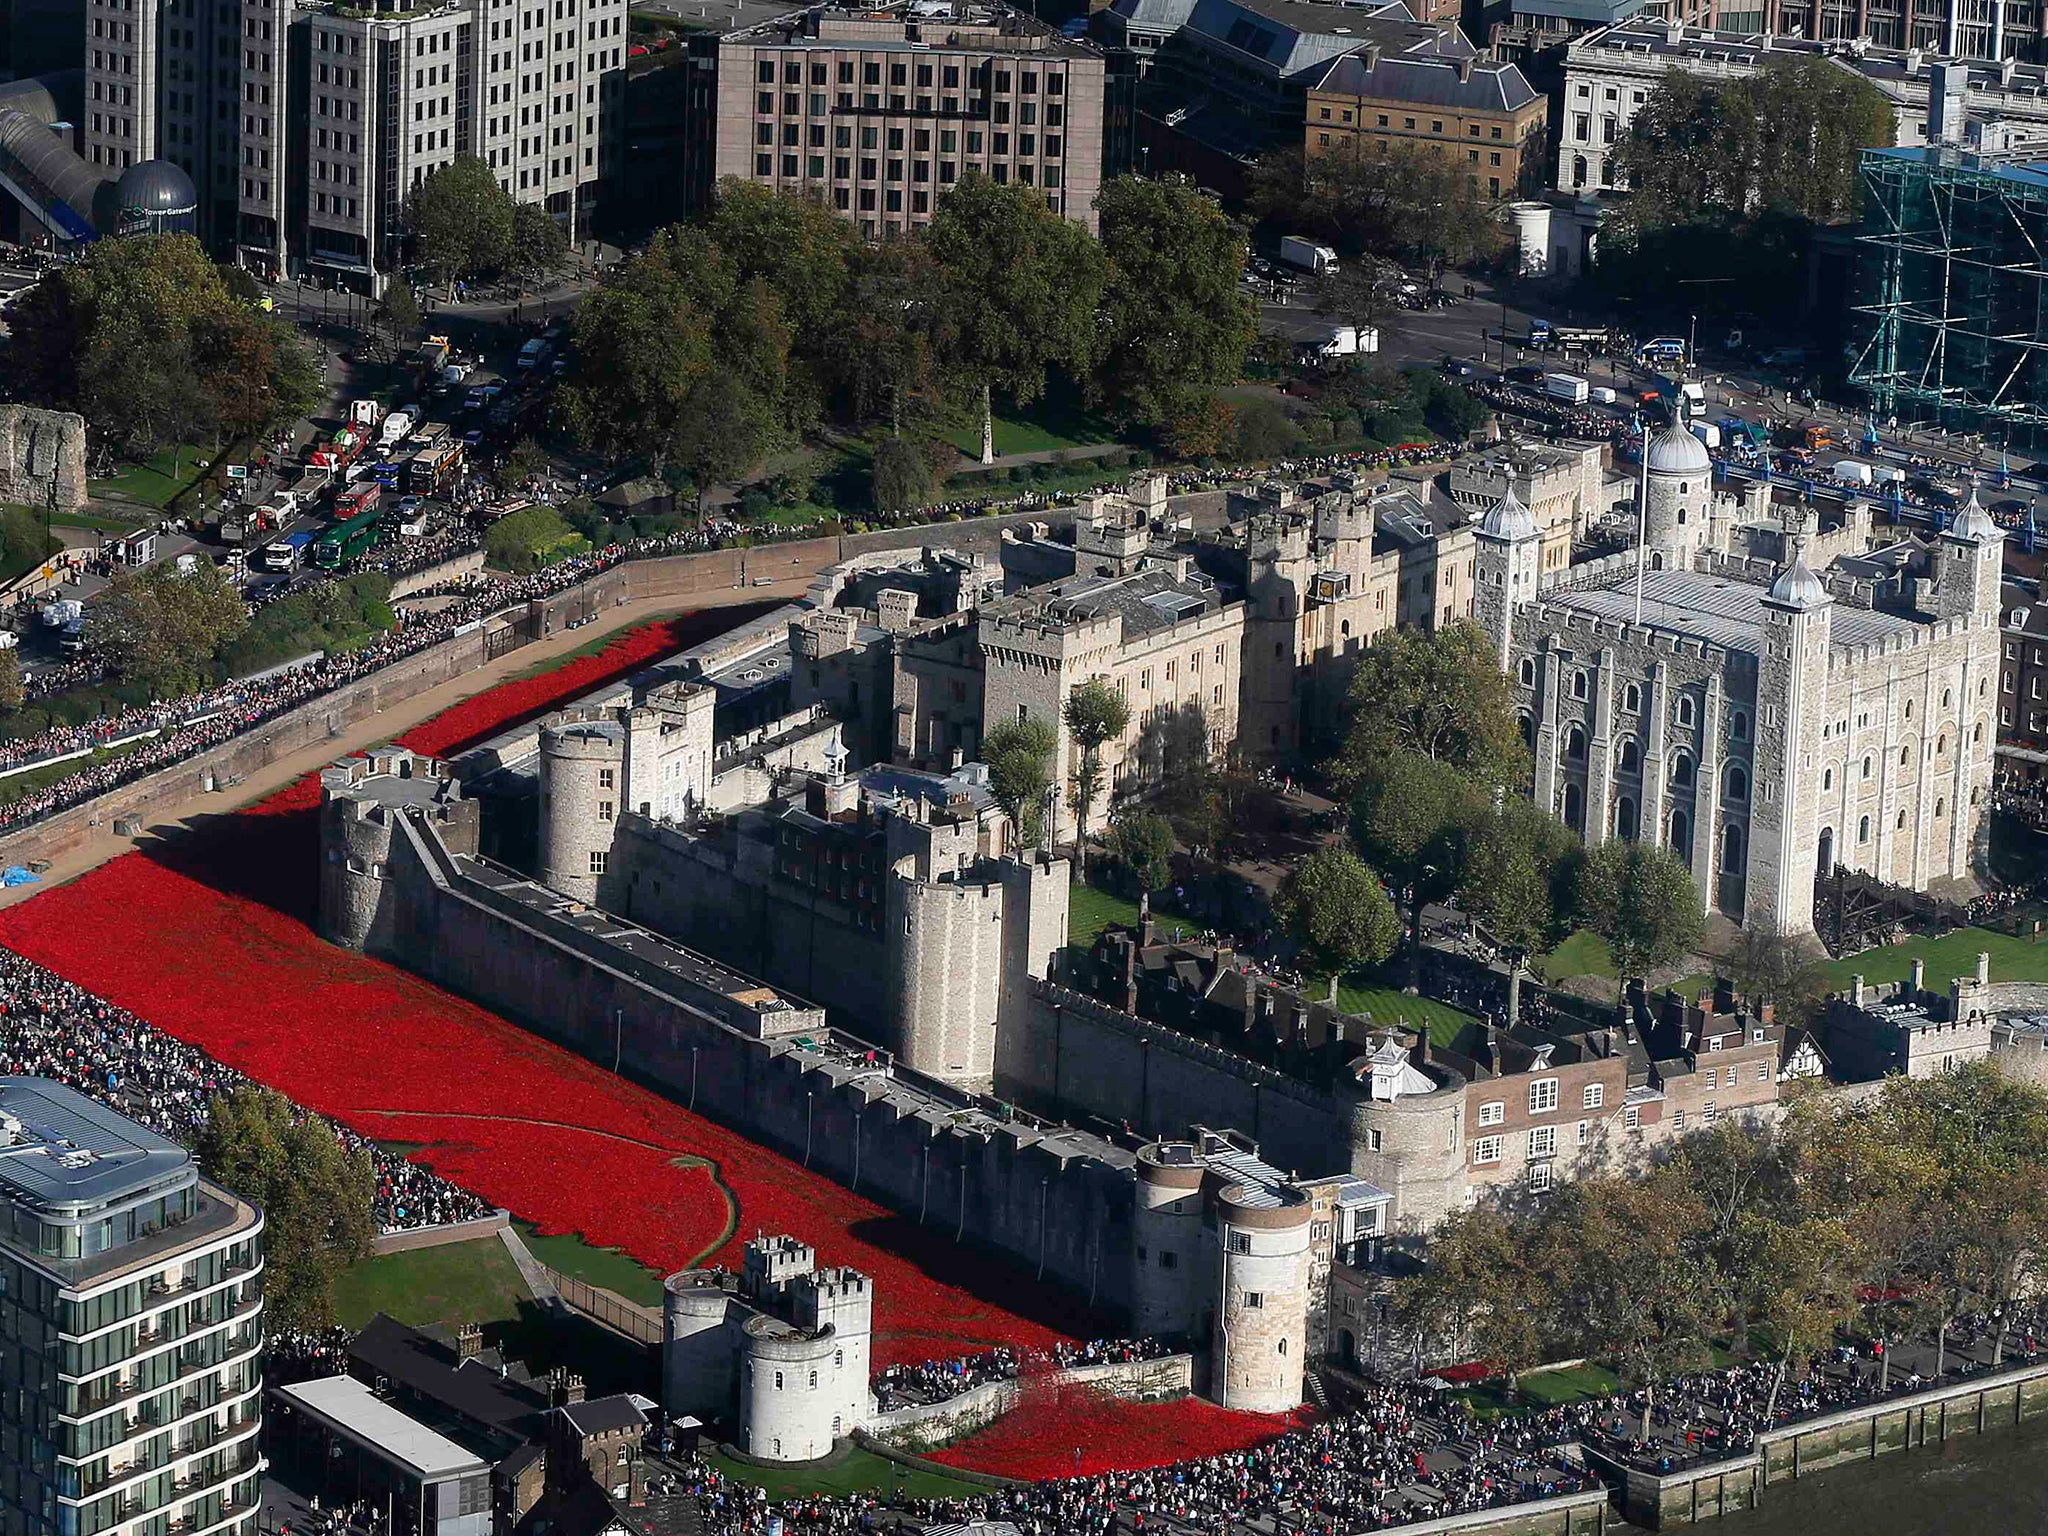 The history of the Remembrance Poppy | The Independent